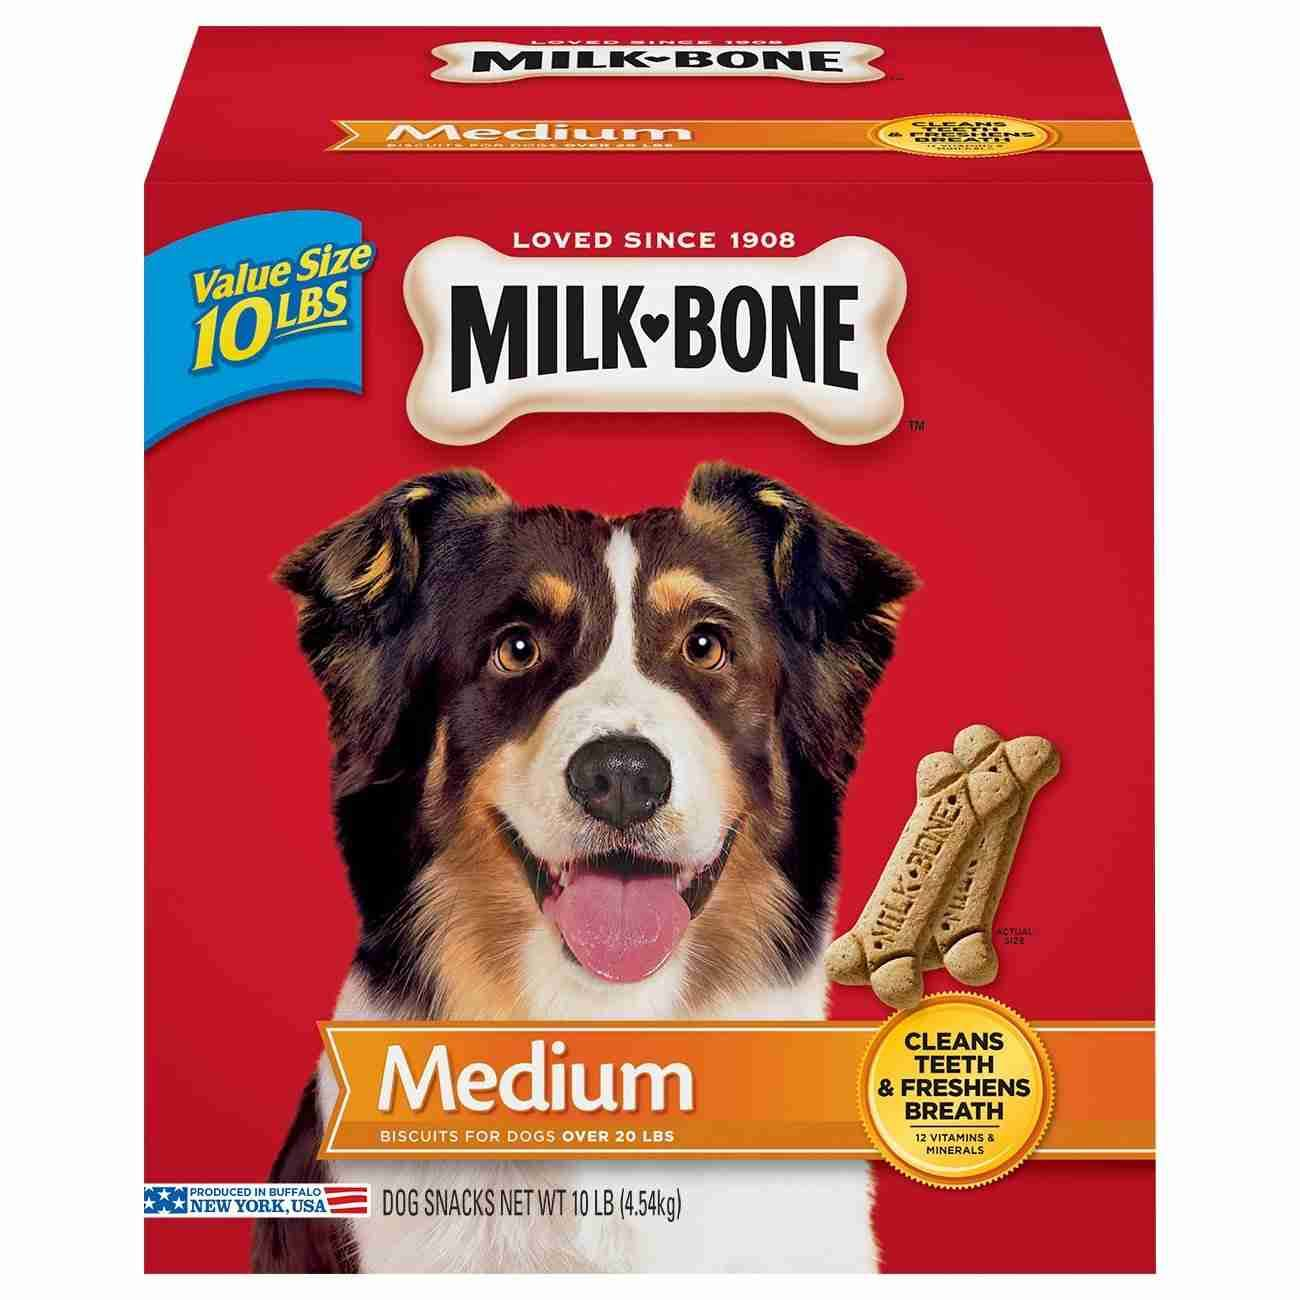 Milk-Bone Original Dog Treats - 10lbs, for Medium Dogs